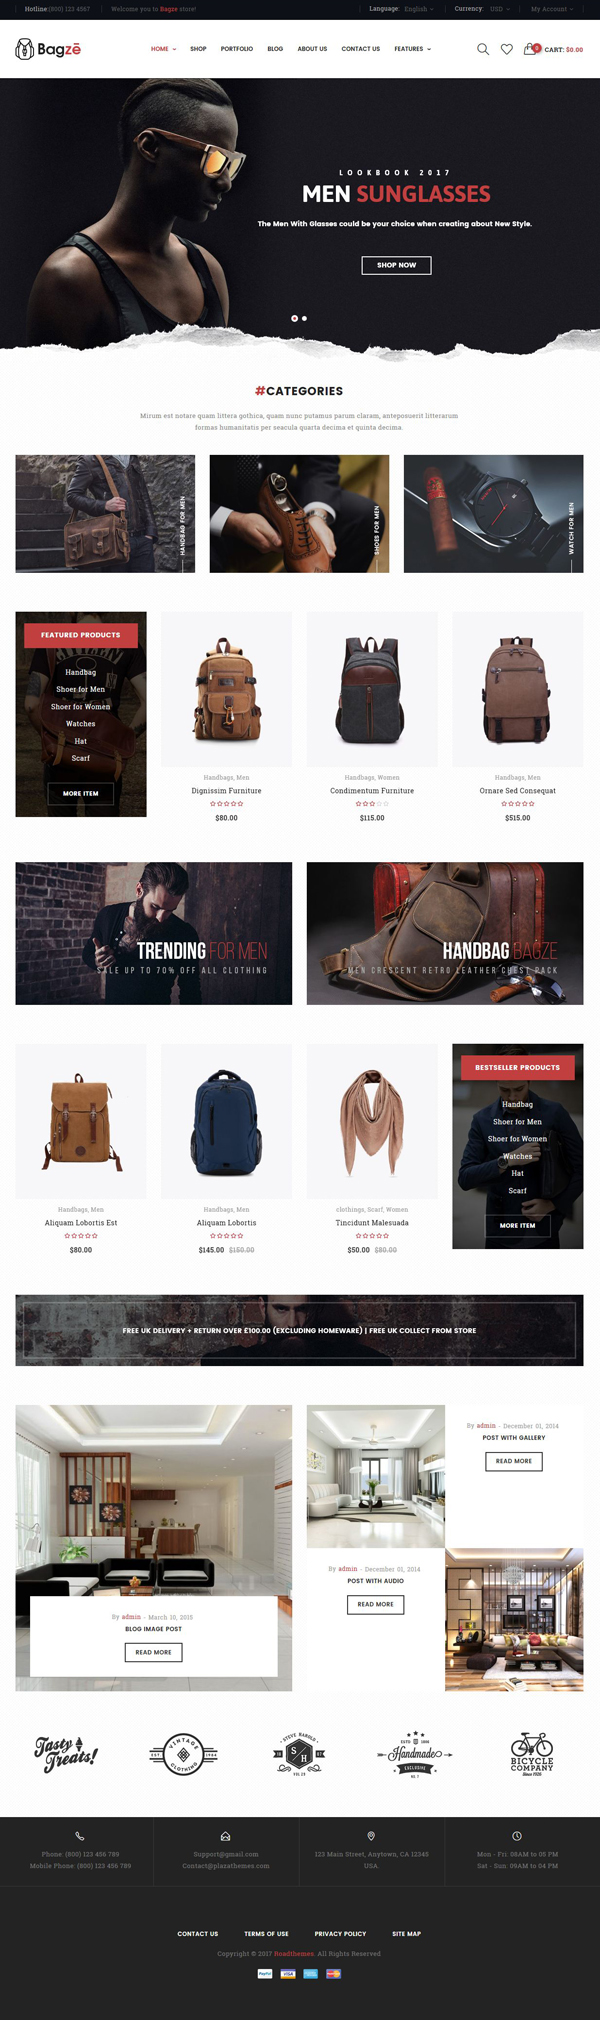 Bagze - Bag Shop WooCommerce WordPress Theme